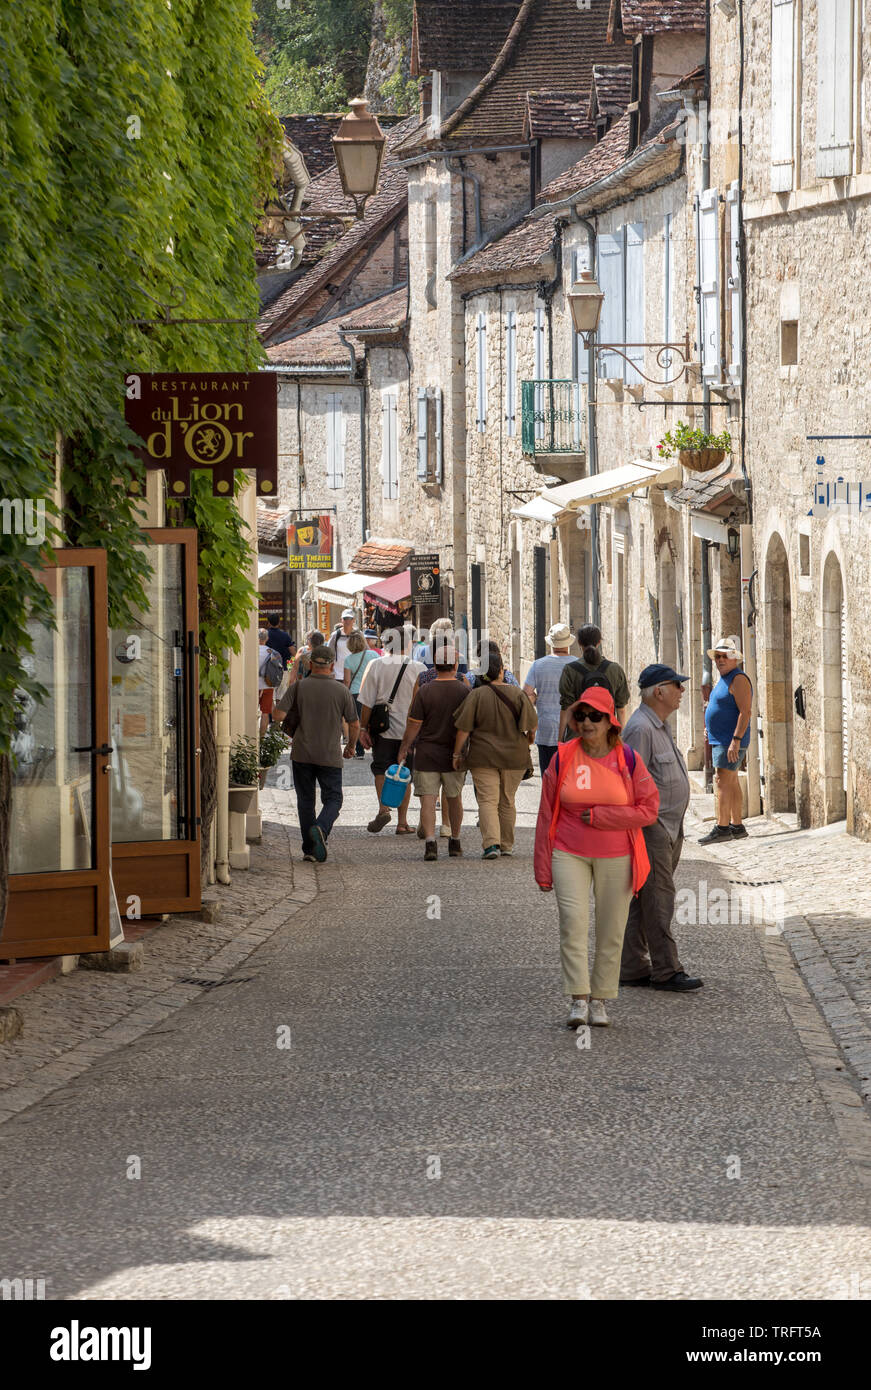 Rocamadour, France - September 3, 2018: Tourists walking in the medieval centre of Rocamadour. France Stock Photo